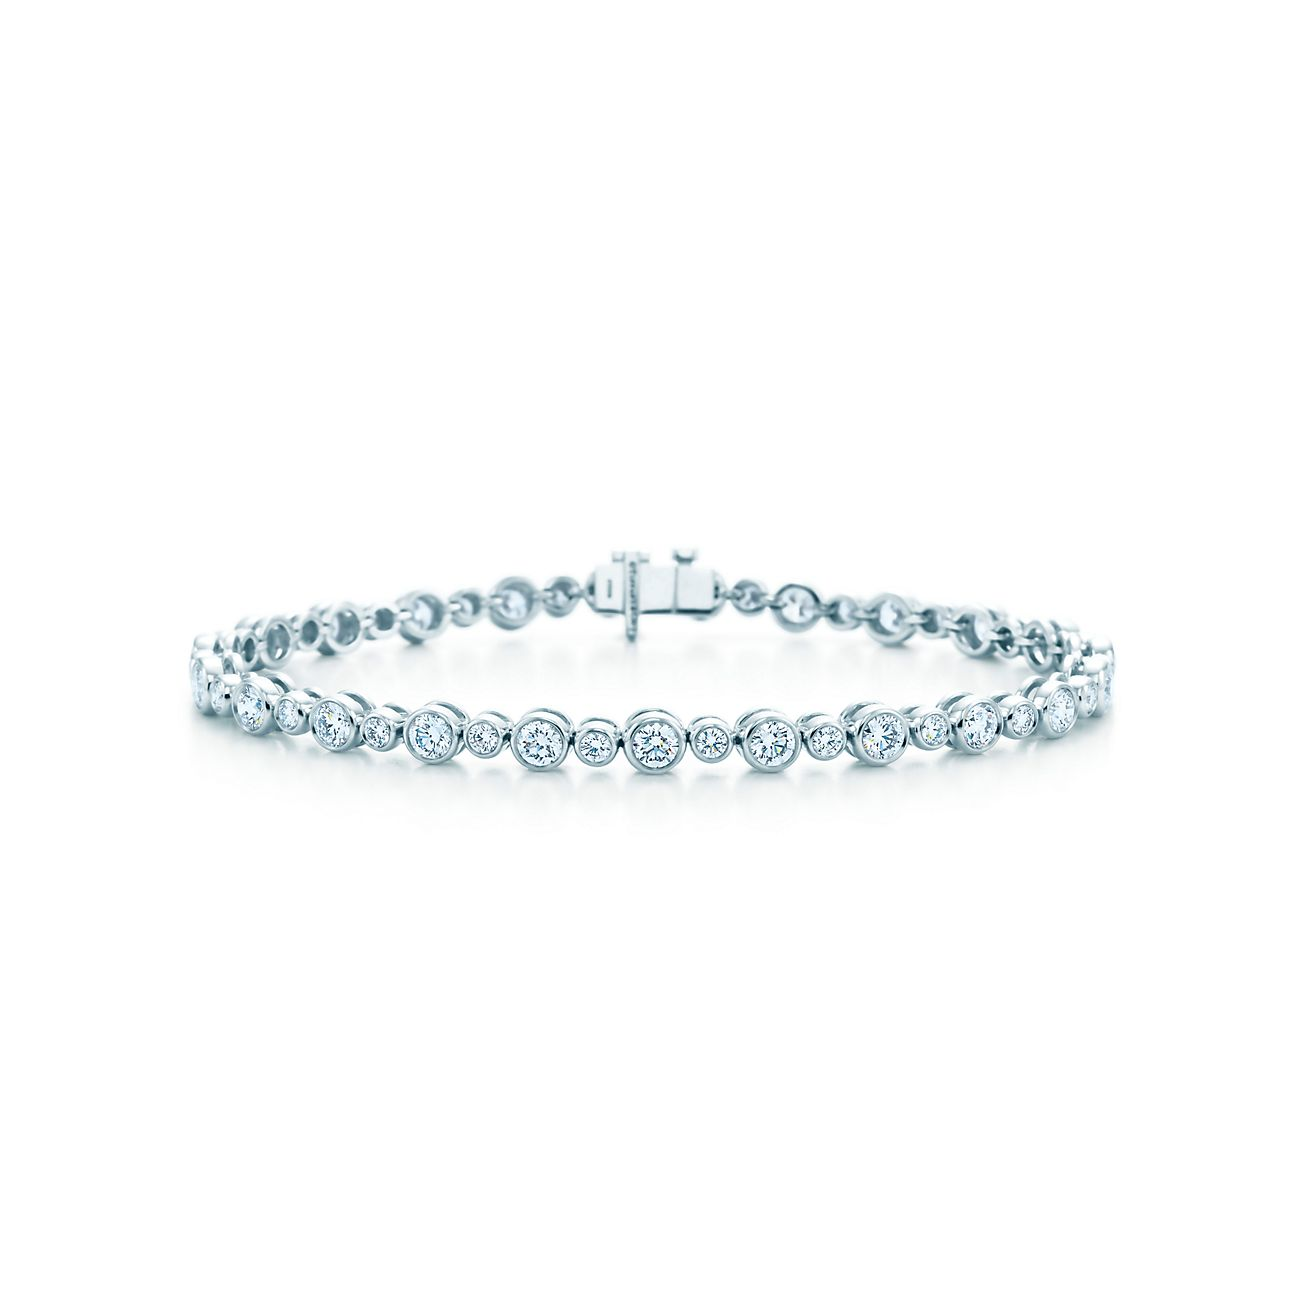 Tiffany Jazz Bracelet